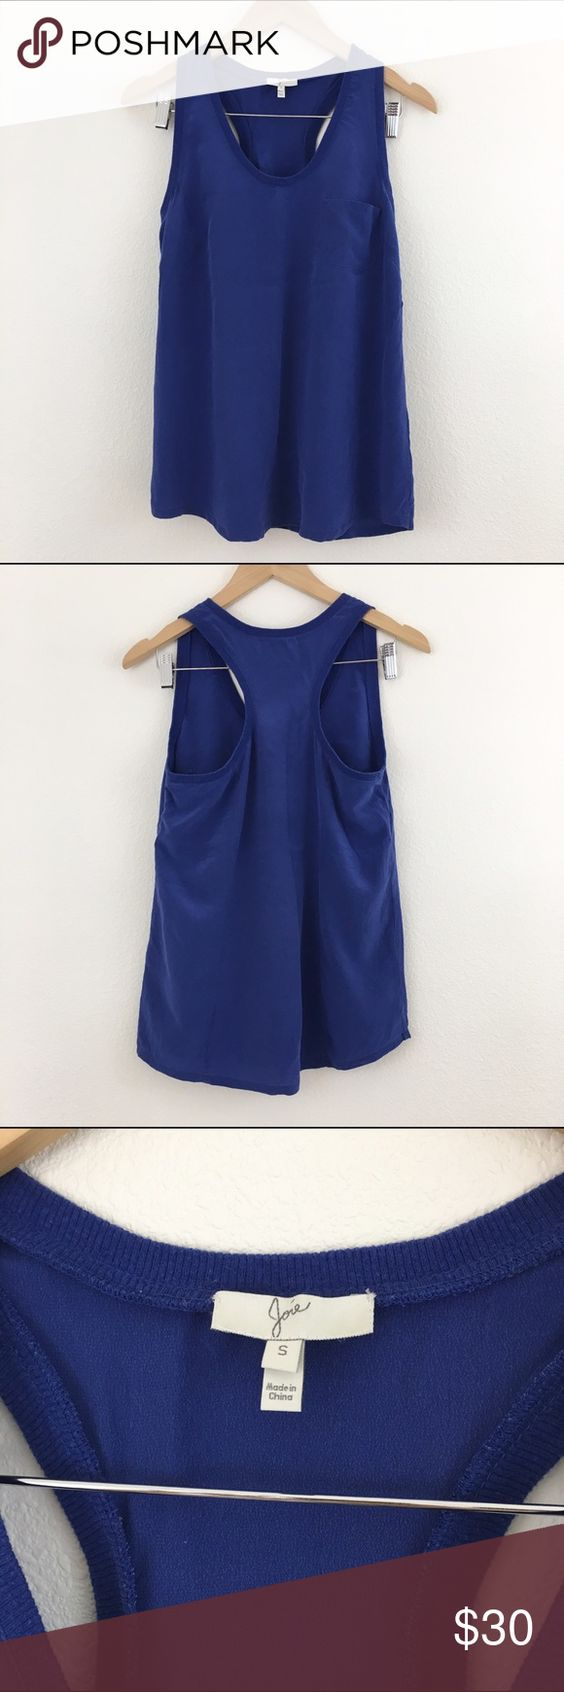 """Joie racerback silk tank Joie racerback tank with front pocket and rounded hem. 100% silk. Measures approx 17"""" armpit to armpit, 25"""" from shoulder seam down to hem. No rips or tears but there is a loose seam in 1/4"""" area at bust (see last photo). Color is similar to a muted royal blue. Joie Tops Tank Tops"""